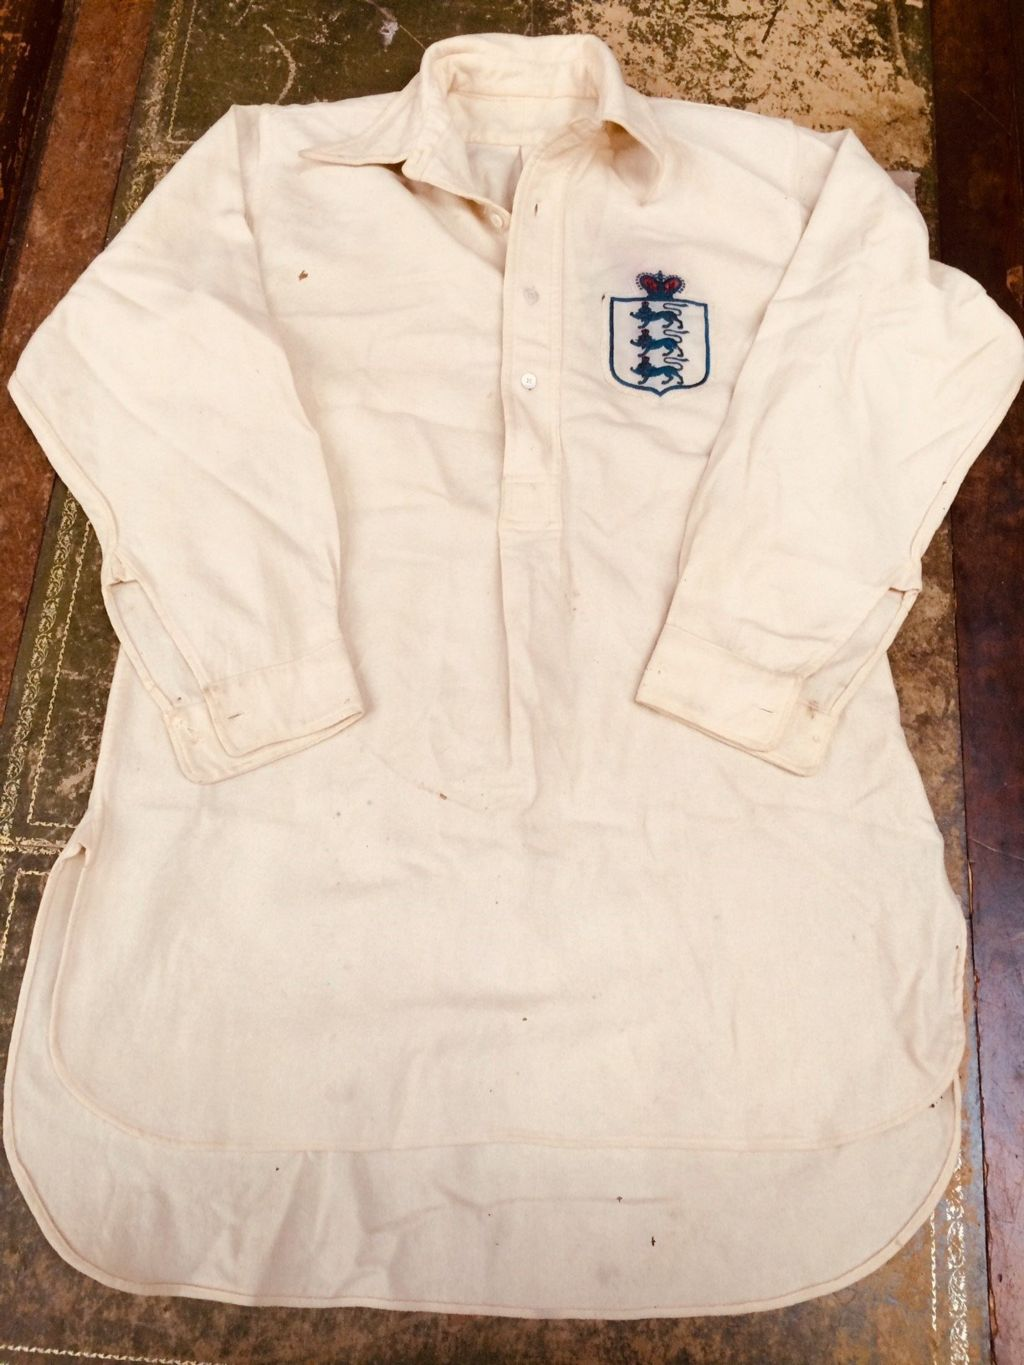 England shirt from 1911